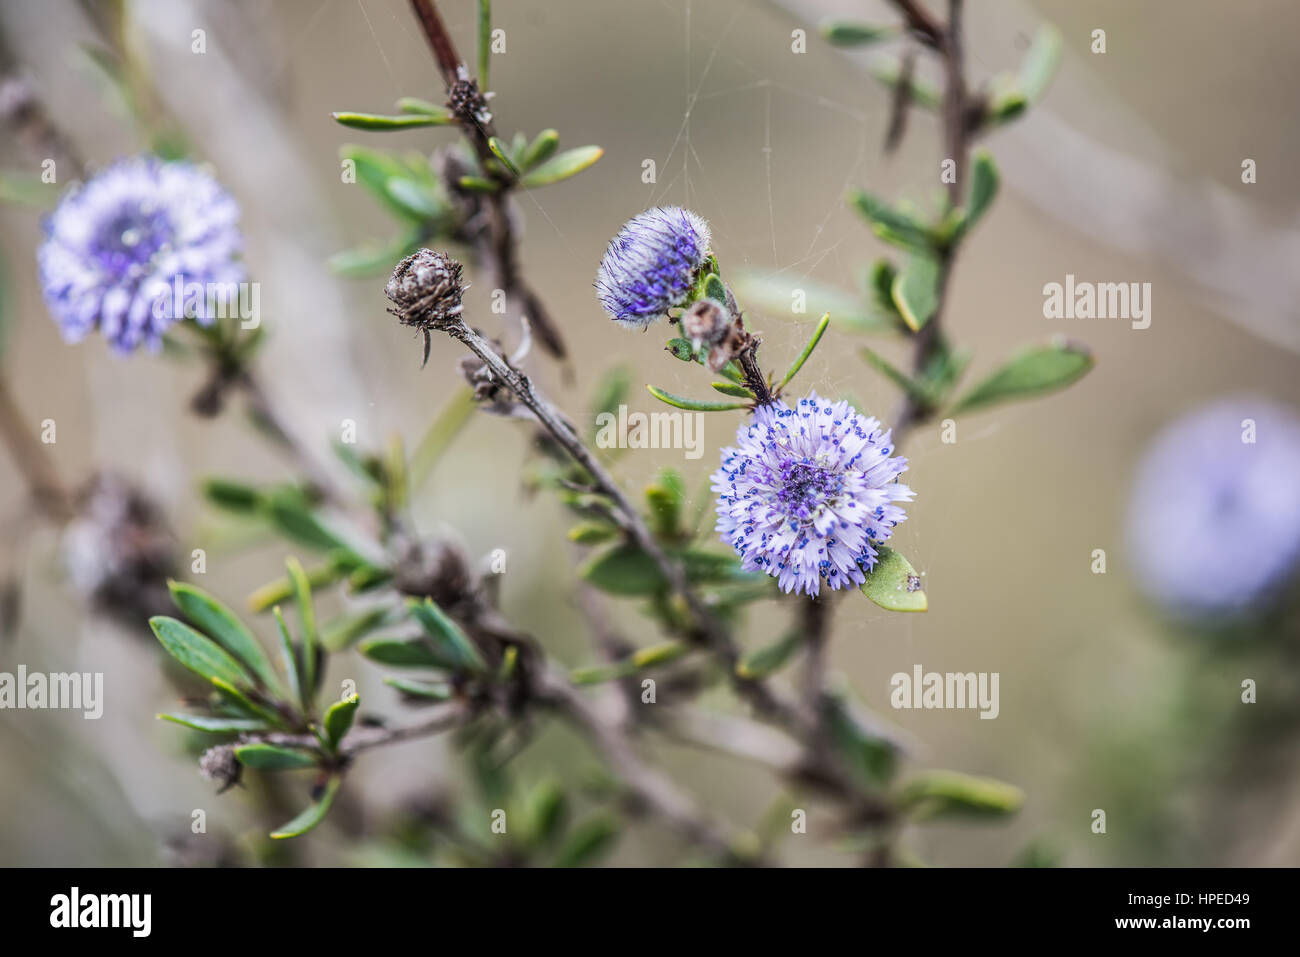 Spanish spring plants blosssom with violet flowers - Stock Image